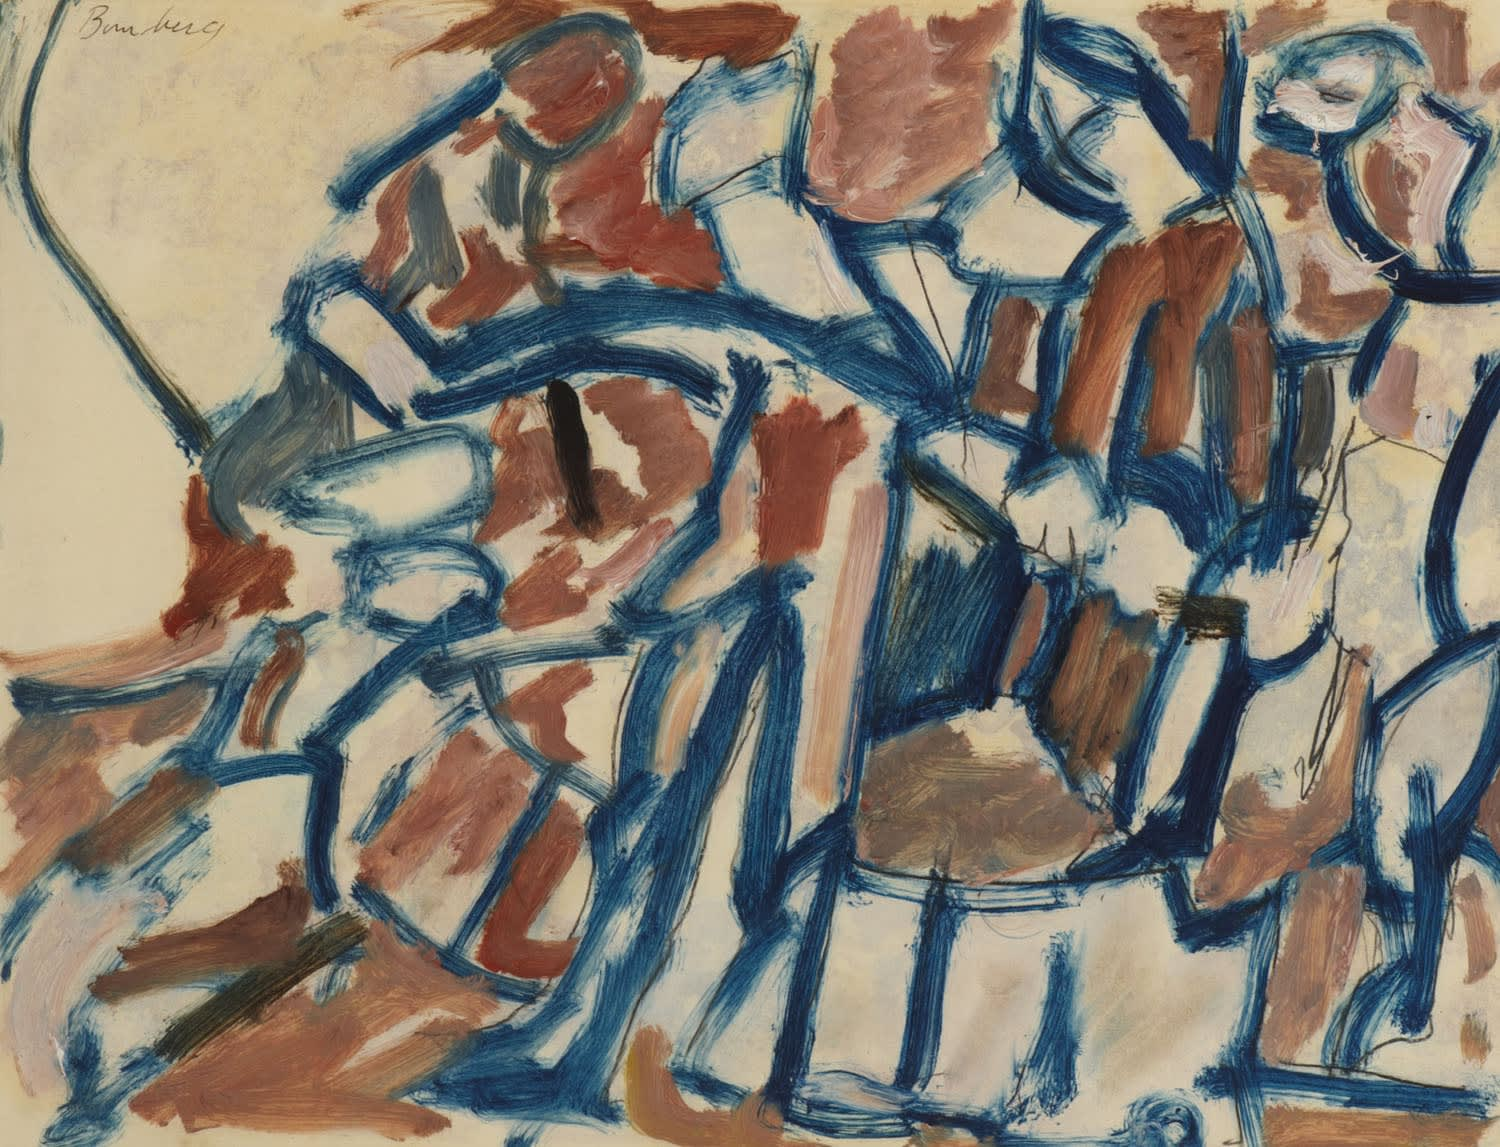 David Bomberg (1890-1957) Ghetto Theatre Study c.1920 Oil an pencil on paper on board 31 x 41.5 cm Ben Uri Collection © David Bomberg estate